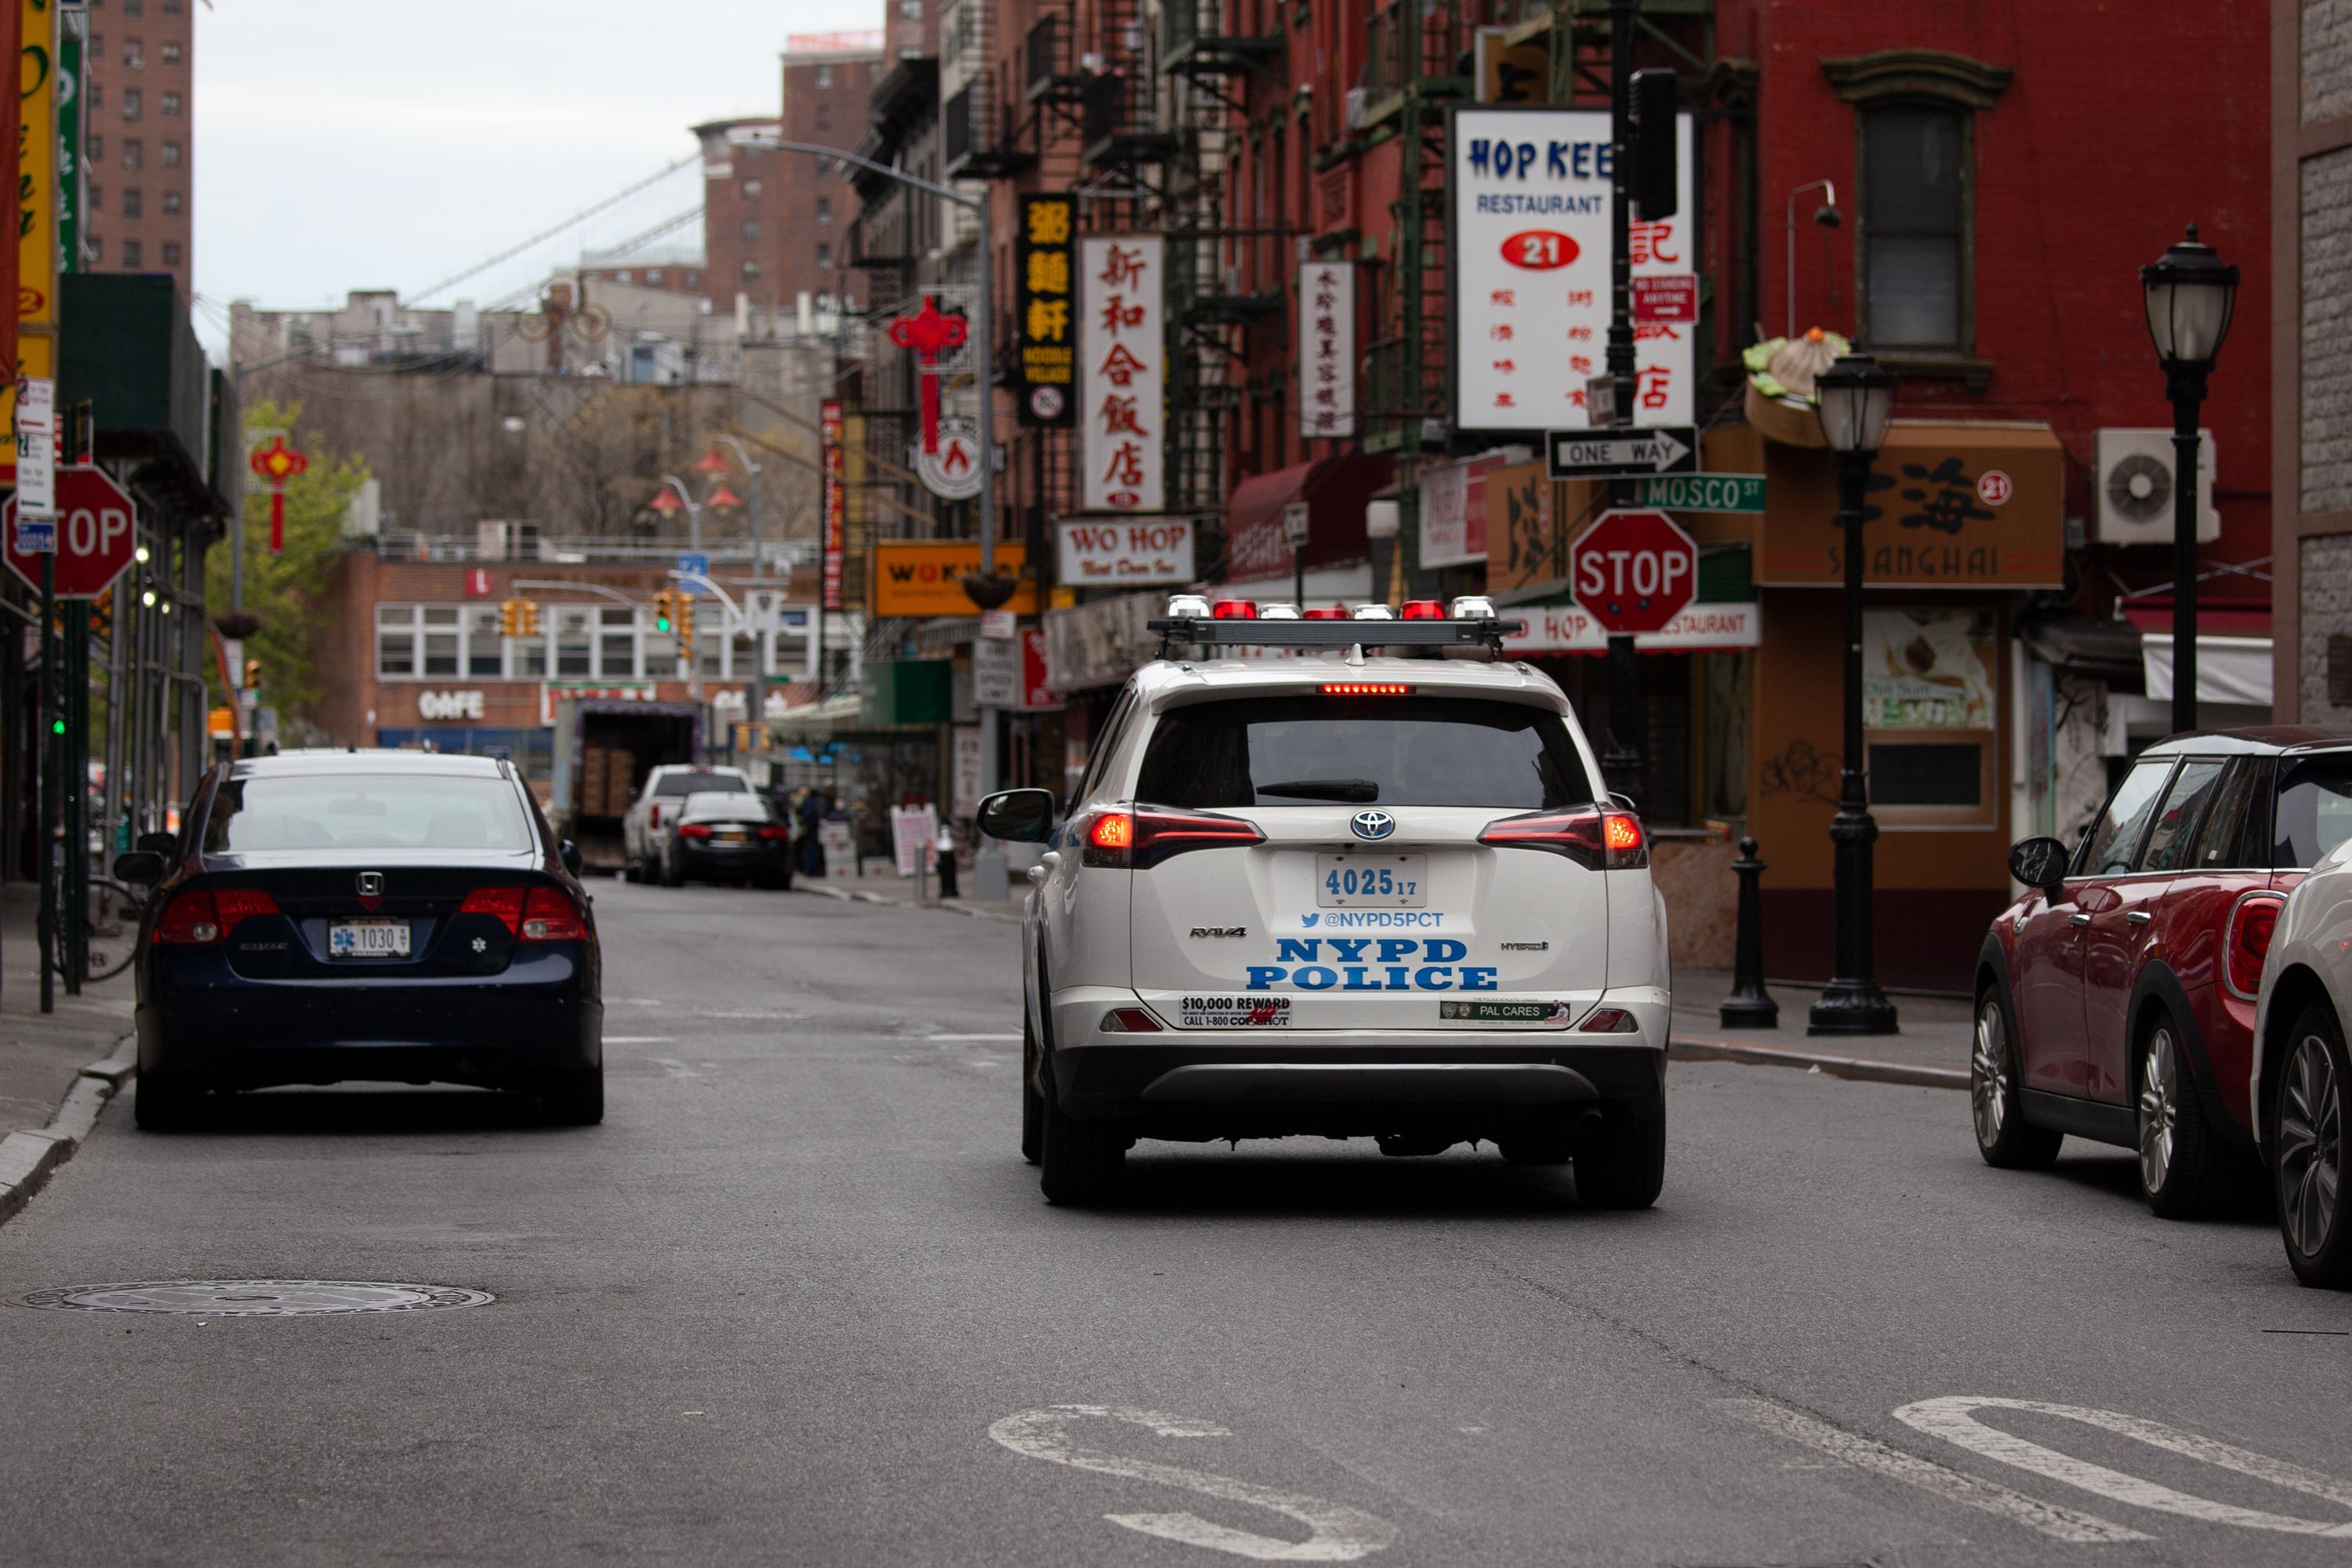 An NYPD vehicle in Lower Manhattan on April 20, 2020.